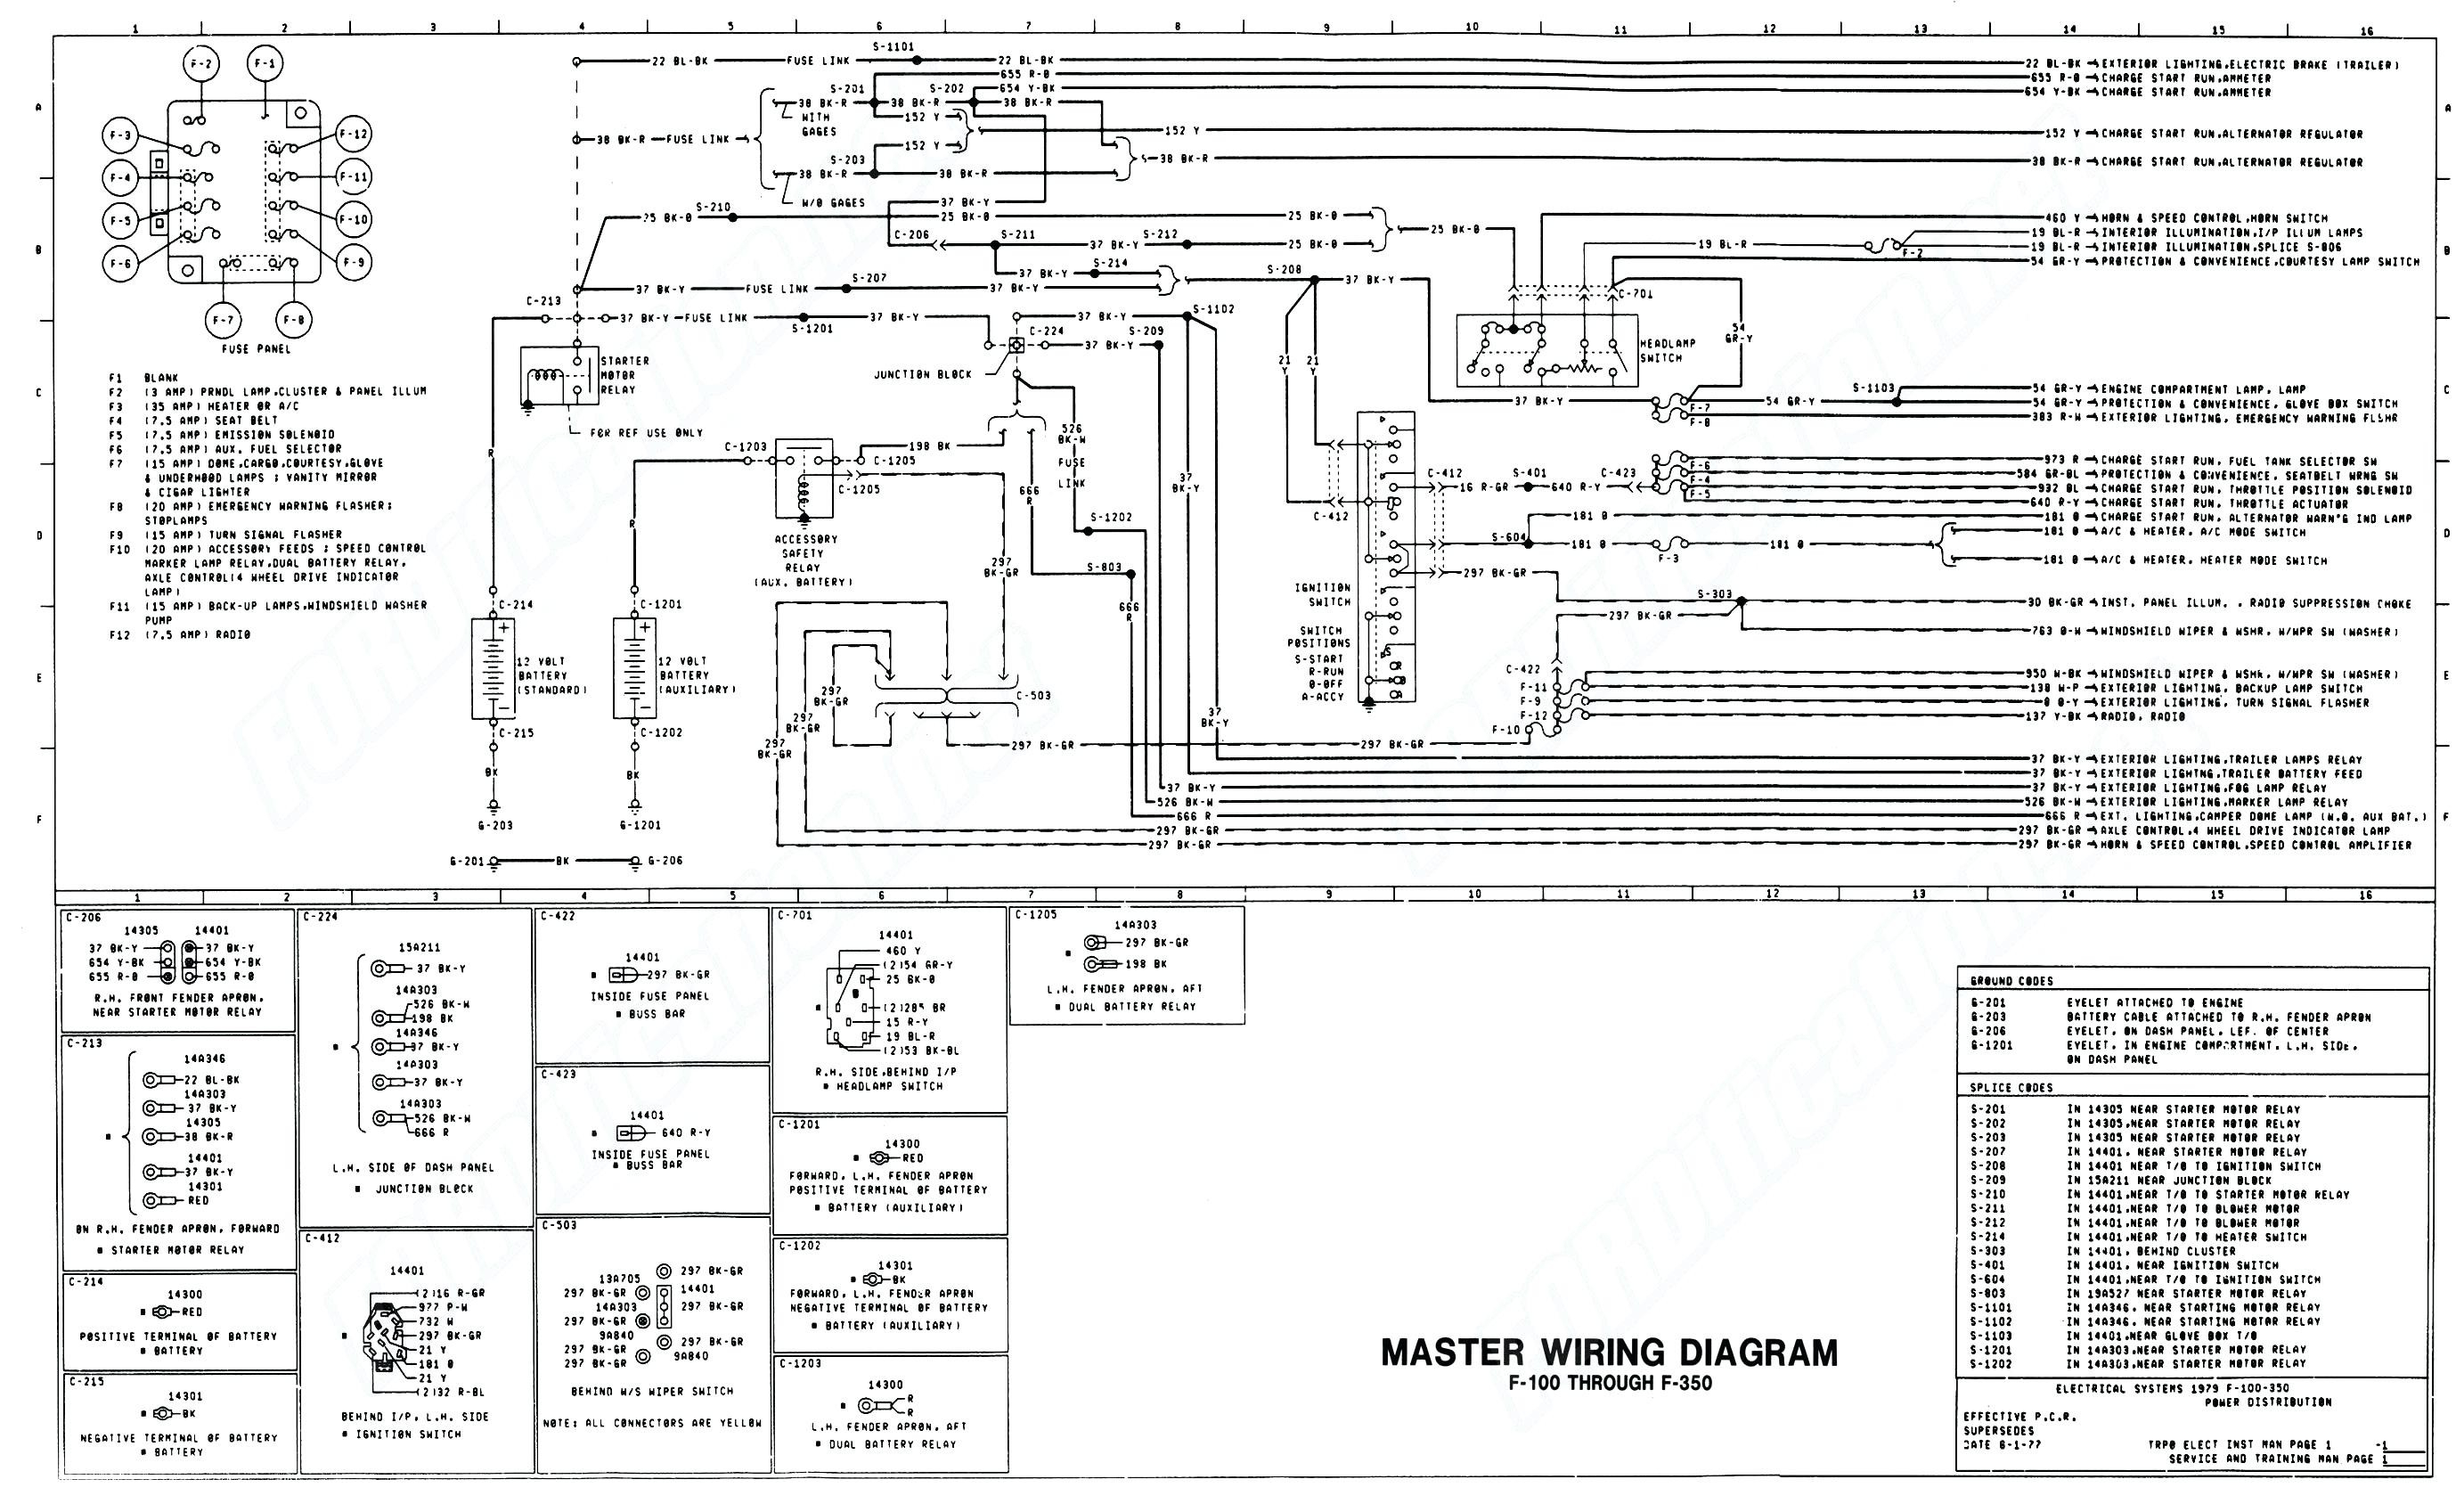 Miata Wiring Harness Diagram